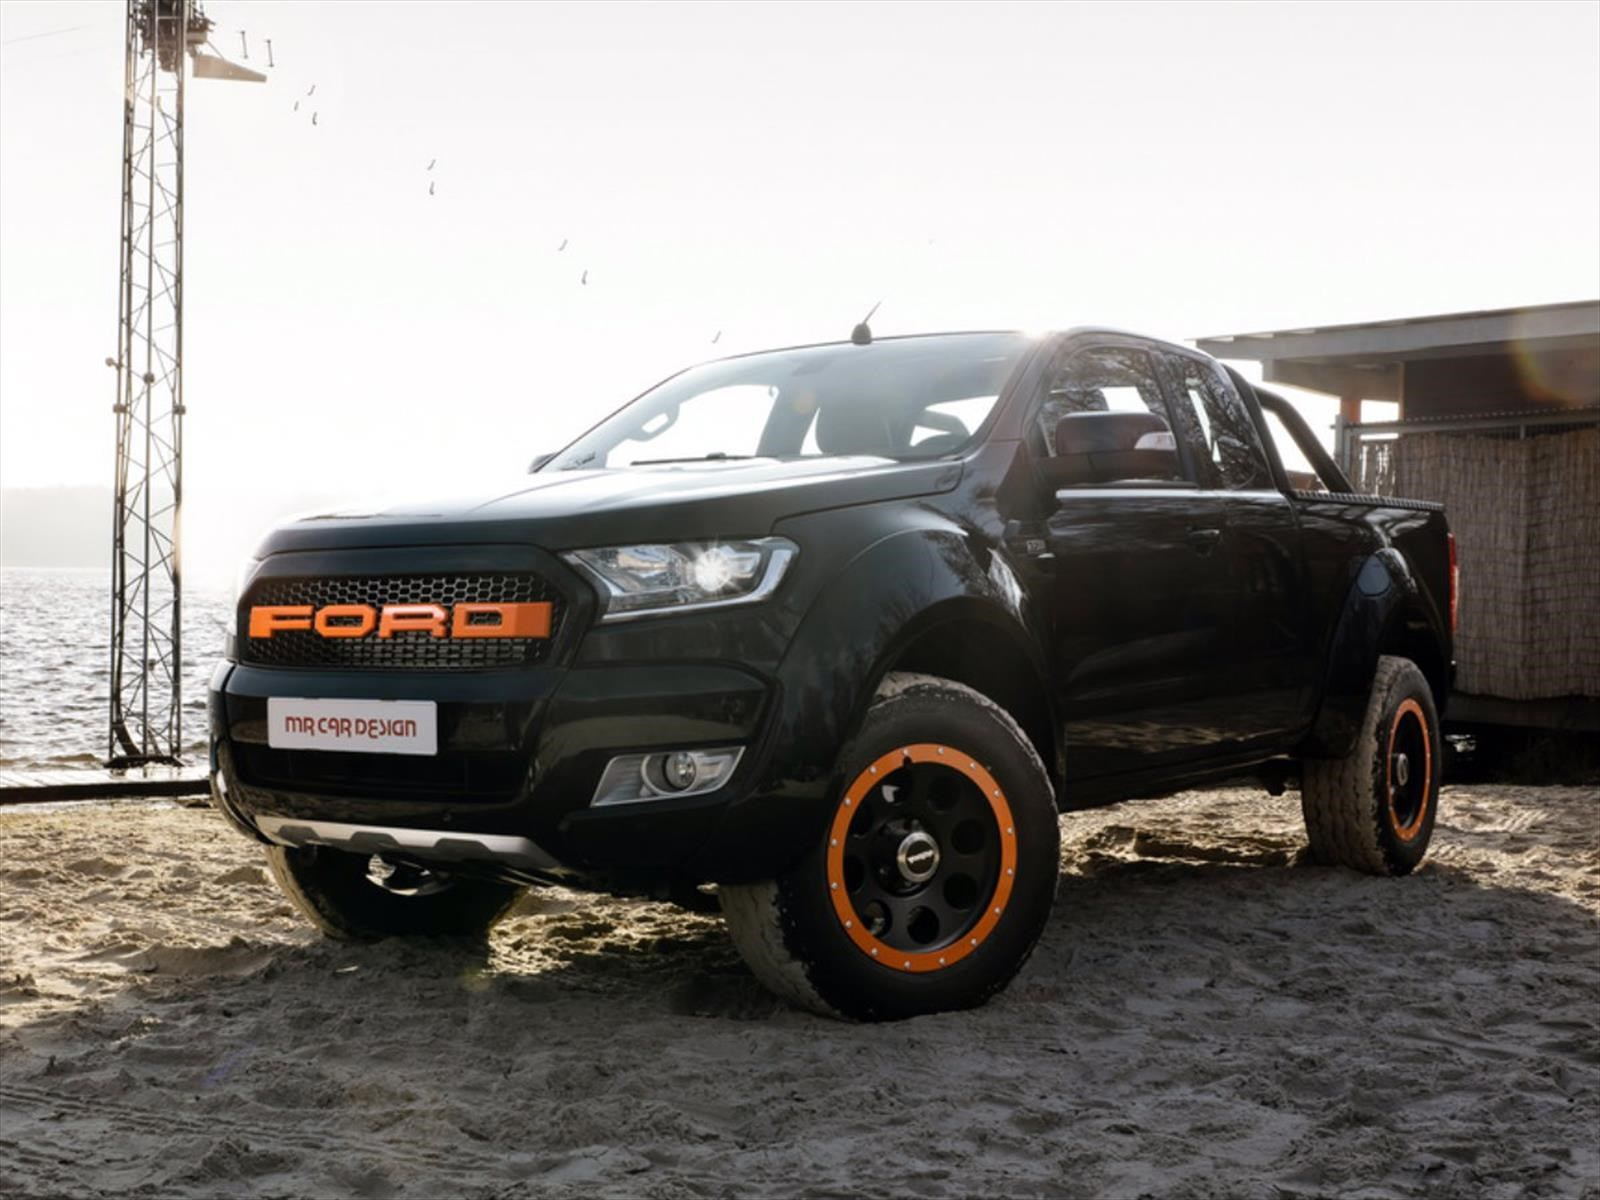 Ford Ranger Por Mr Car Design Todo El Sello Raptor